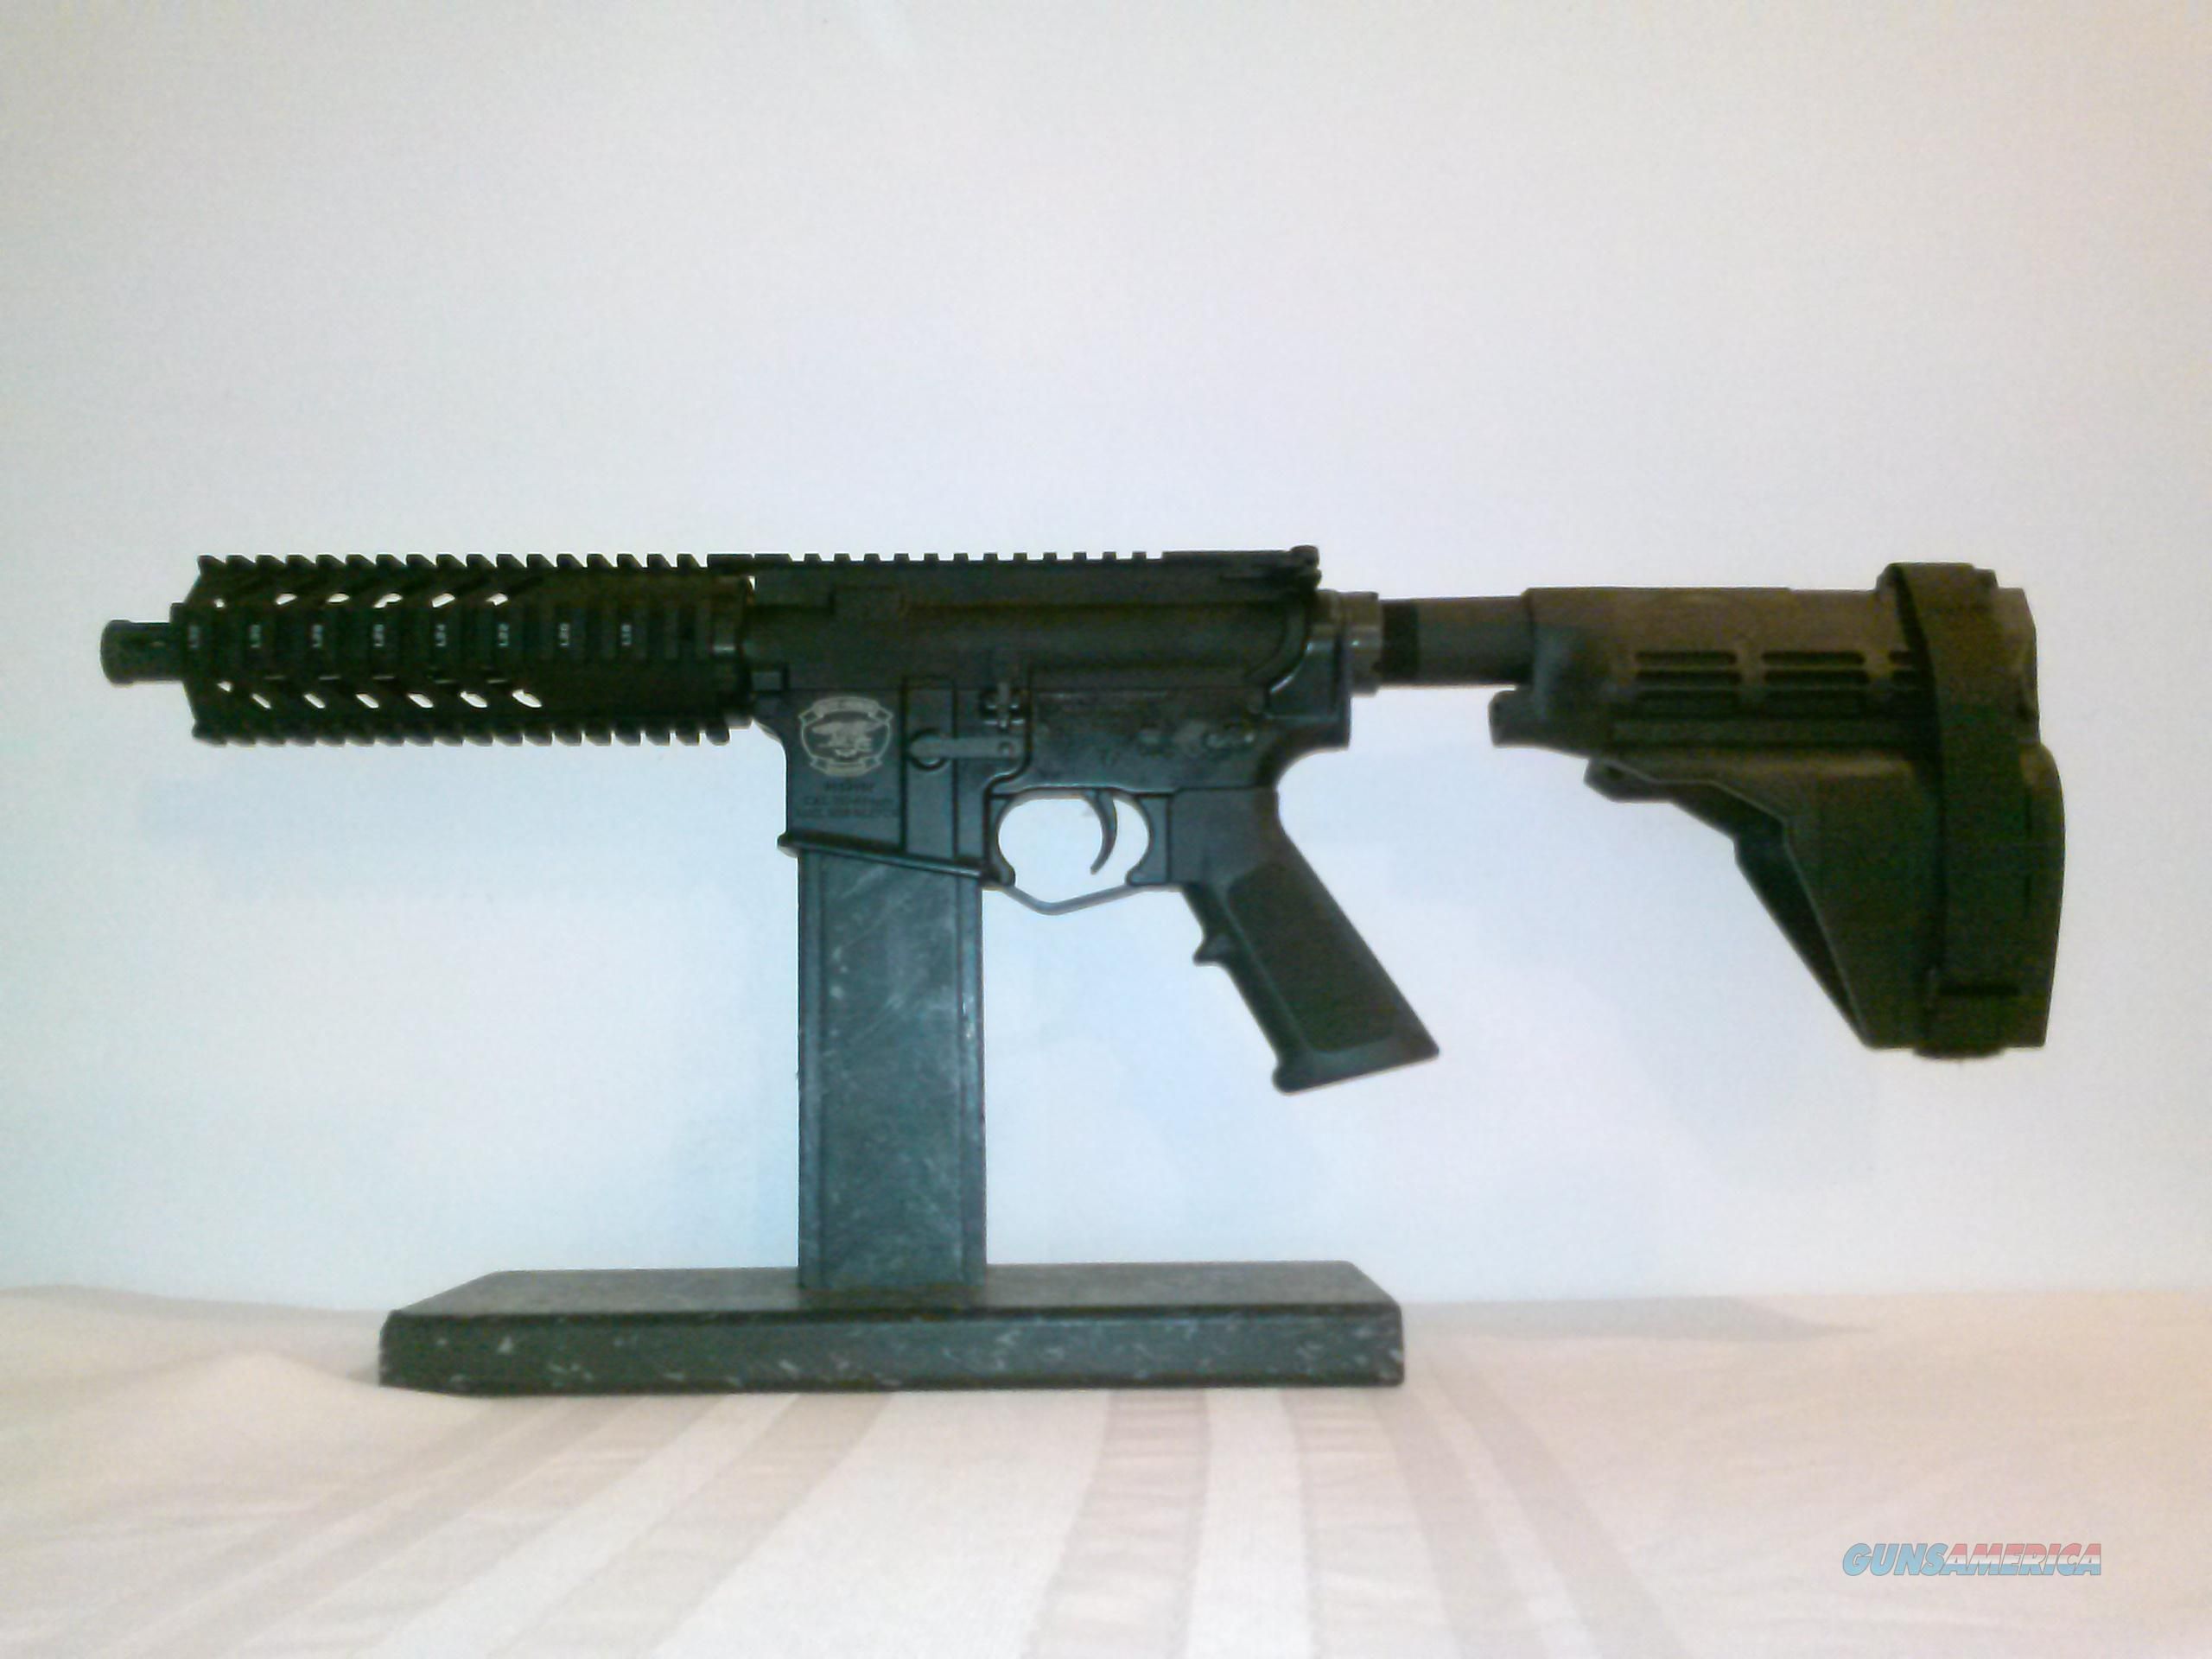 AR15 7.62x39 Pistol kit w/ Sig arm brace.  Non-Guns > Gun Parts > M16-AR15 > Upper Only